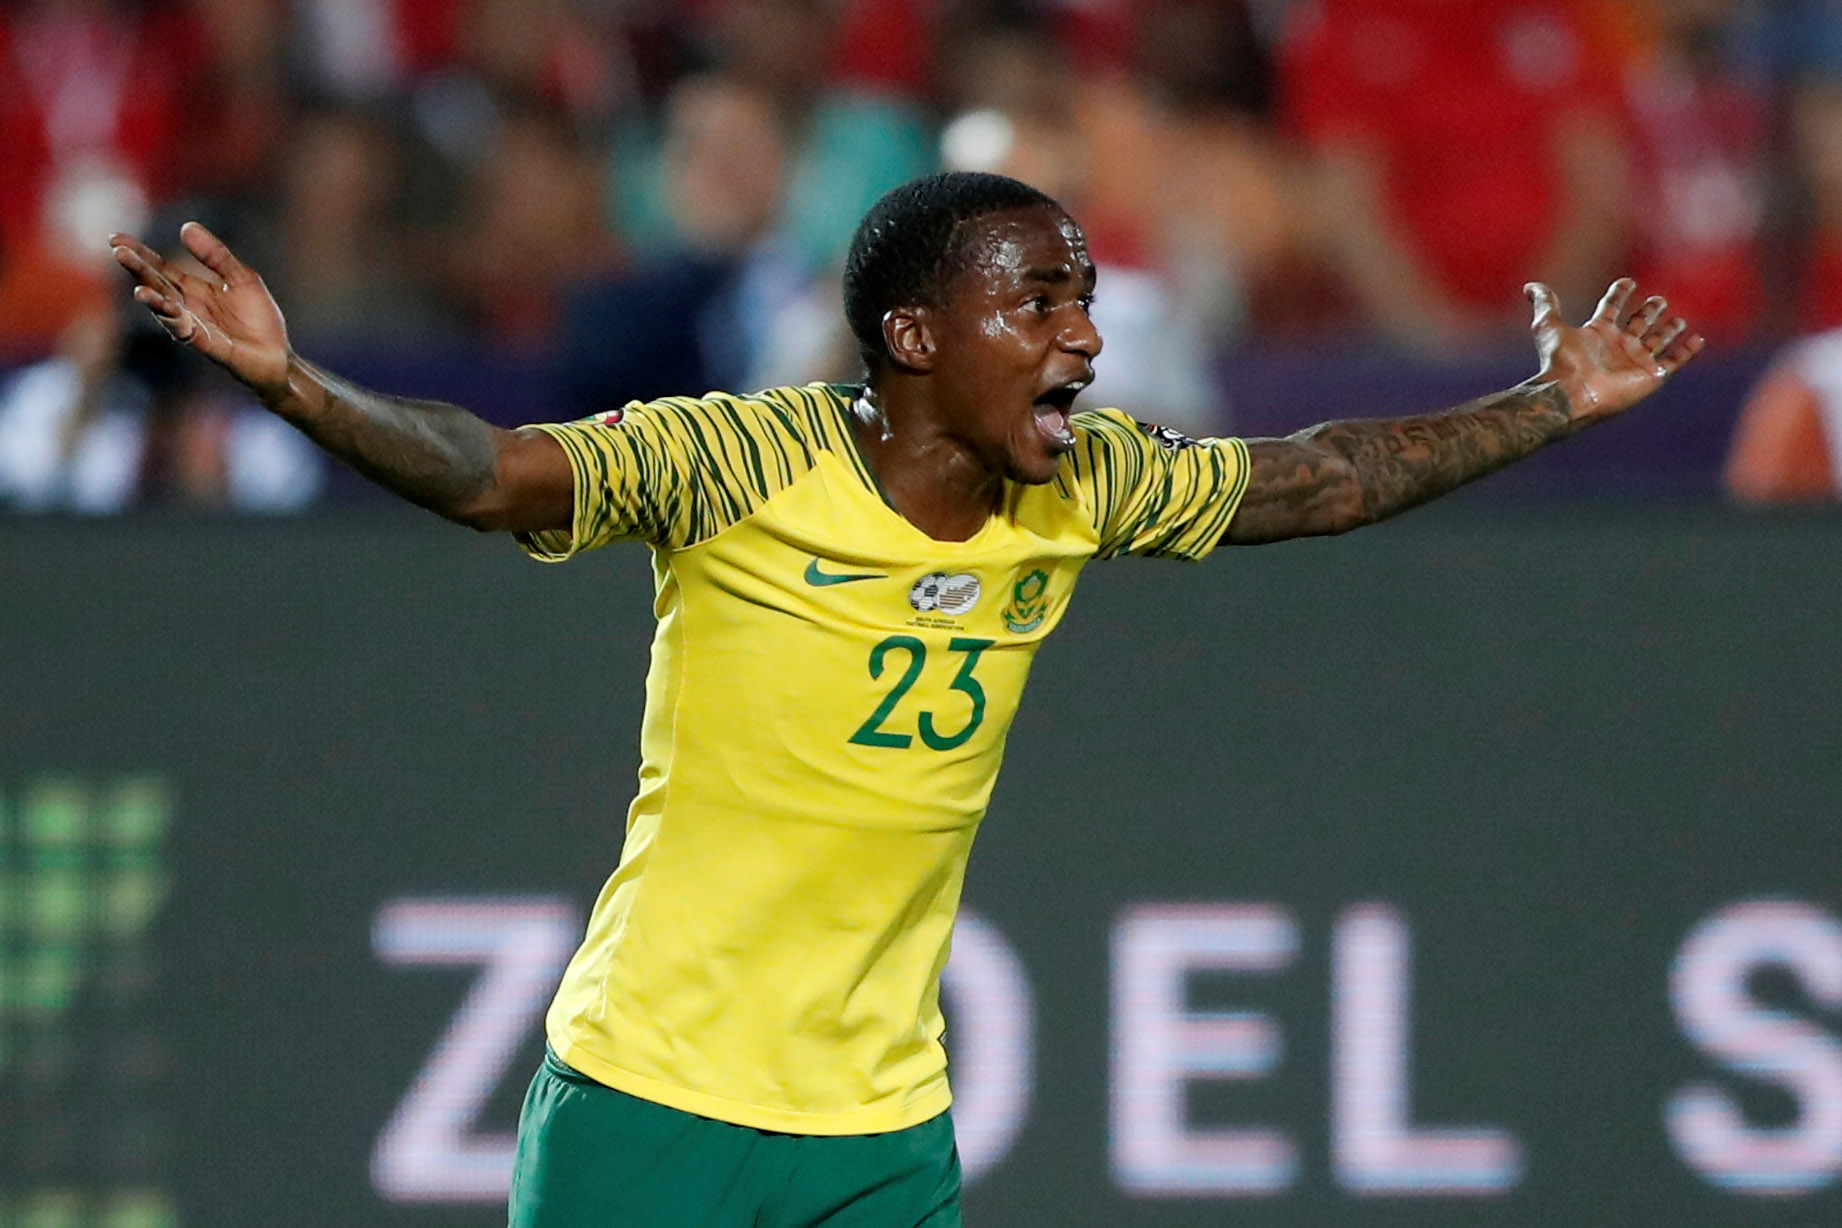 6 July 2019: Thembinkosi Lorch during Bafana Bafana's game against Egypt at Cairo International Stadium. The 1-0 win over the hosts saw South Africa reach the quarterfinals of Afcon 2019. (Photograph by Reuters/Amr Abdallah Dalsh)